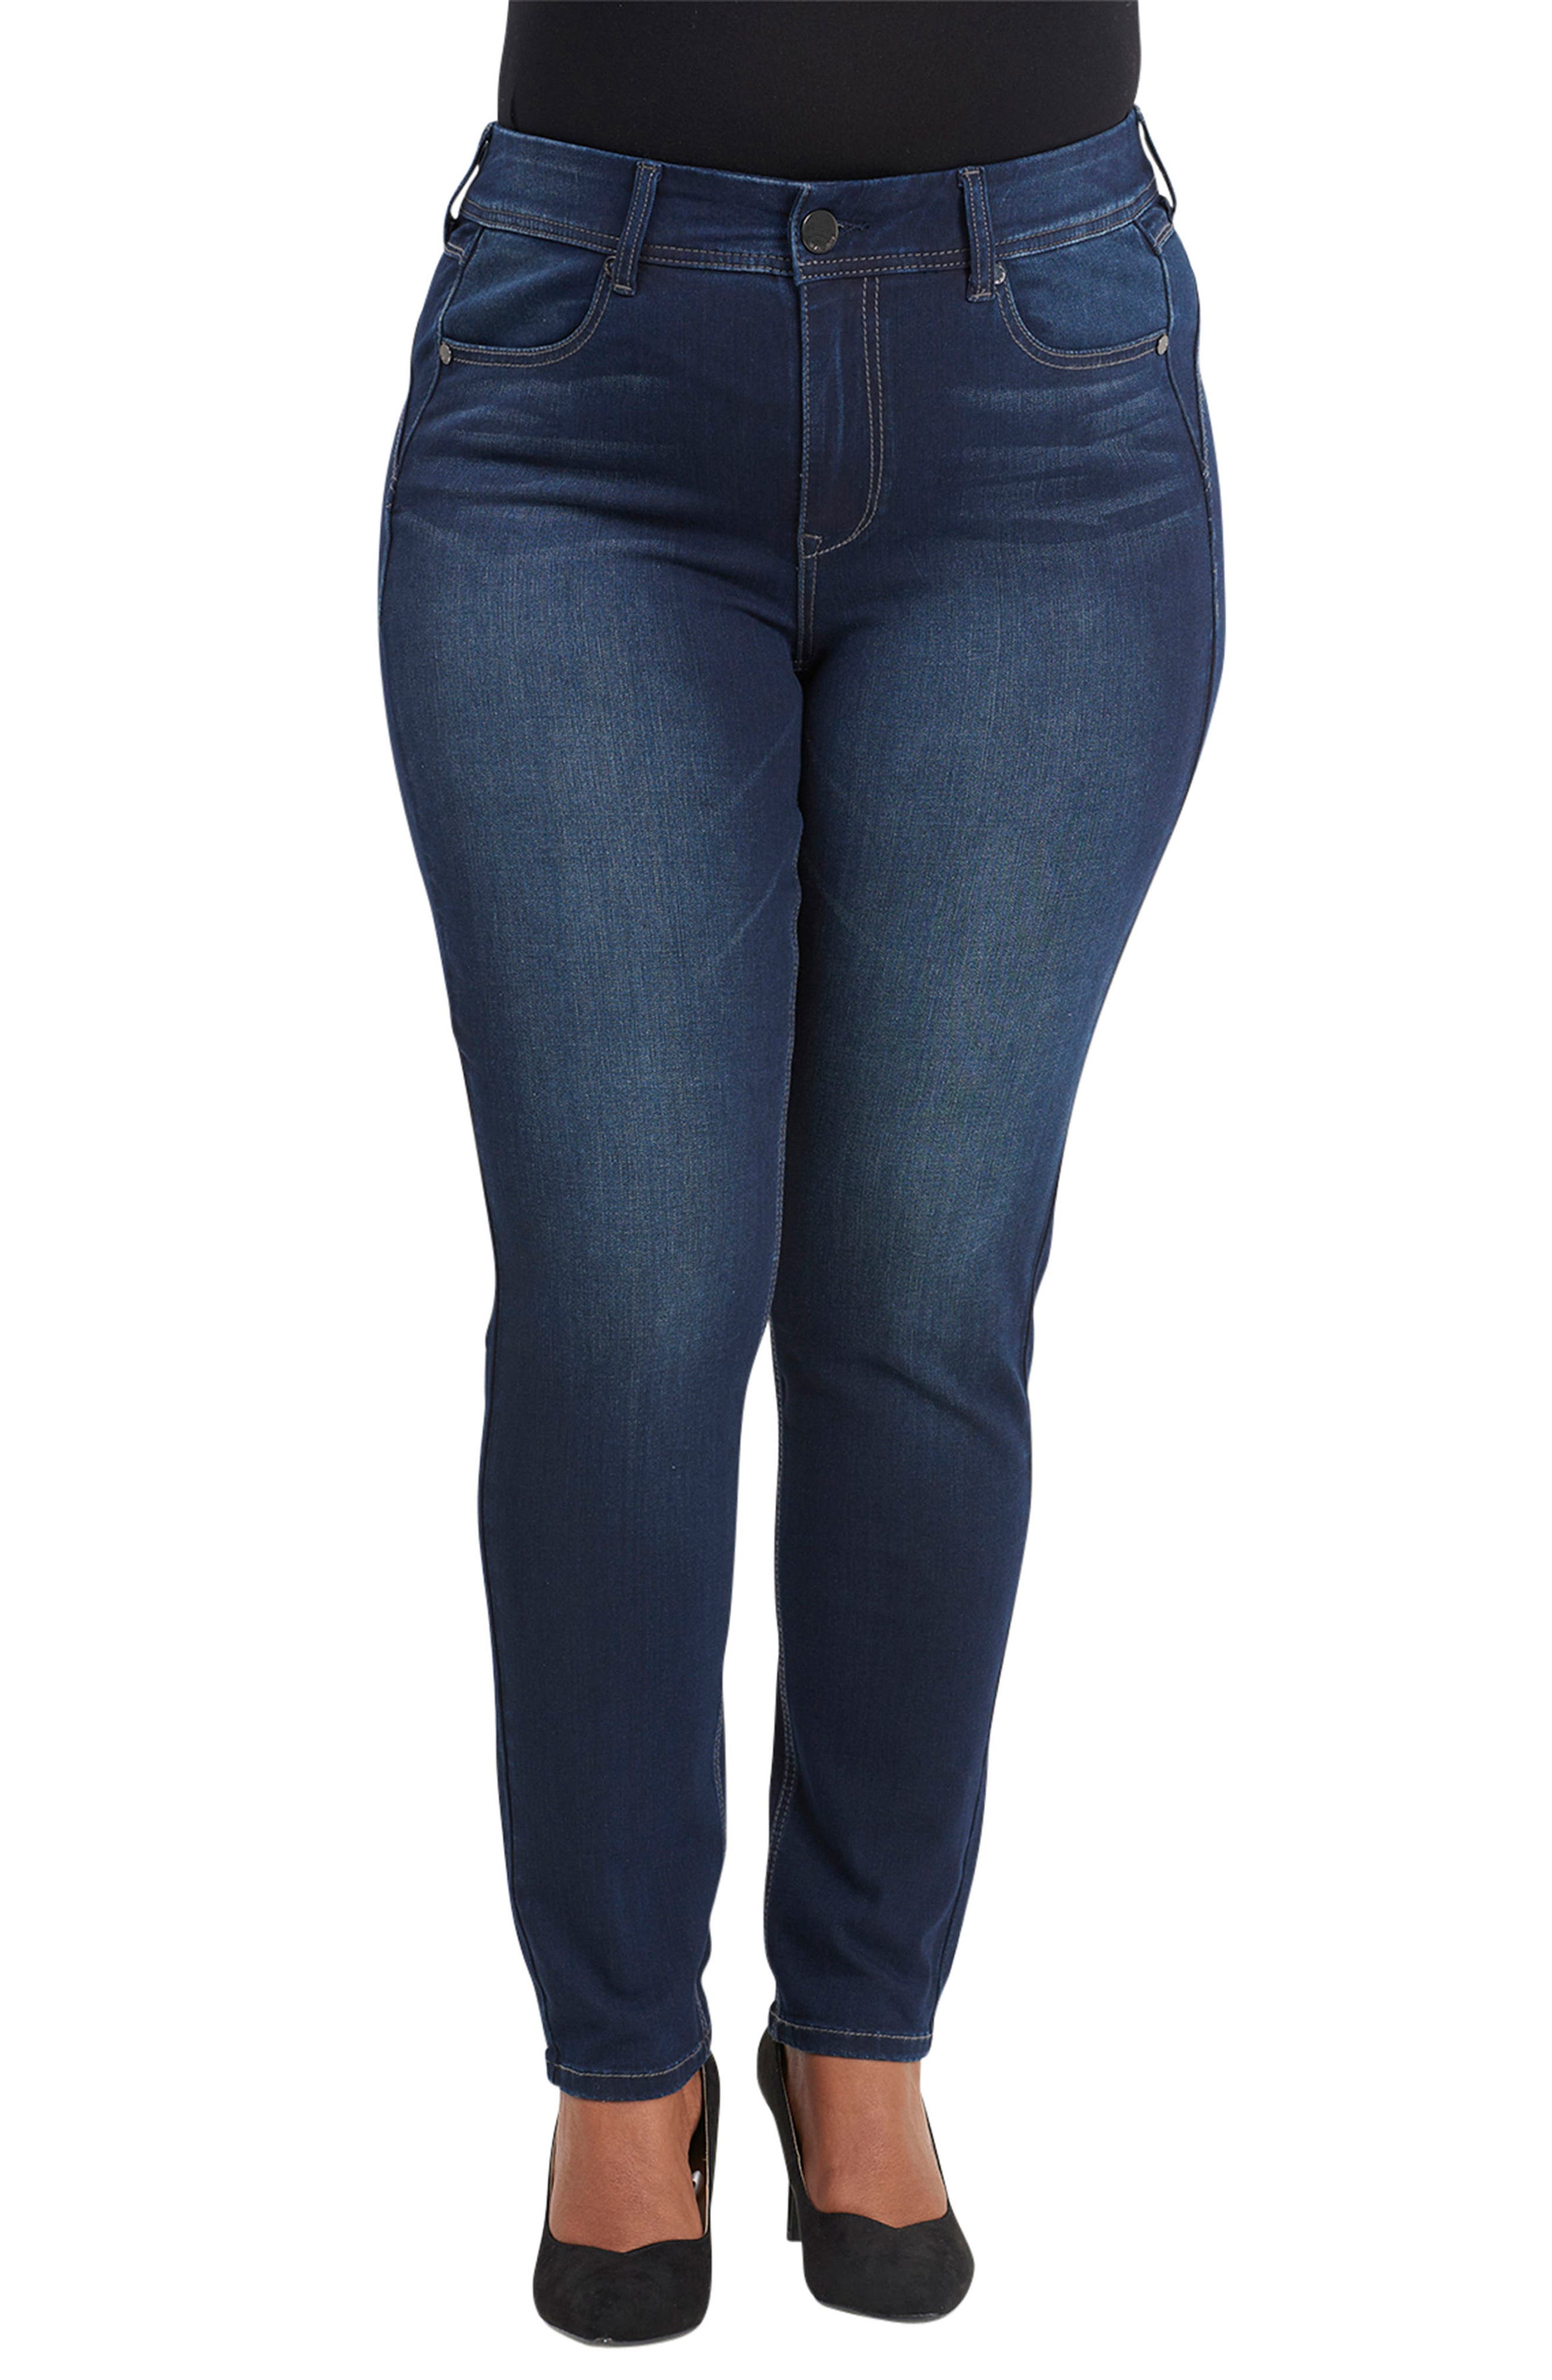 Bootyshaper Skinny Jeans,                         Main,                         color, BLUE